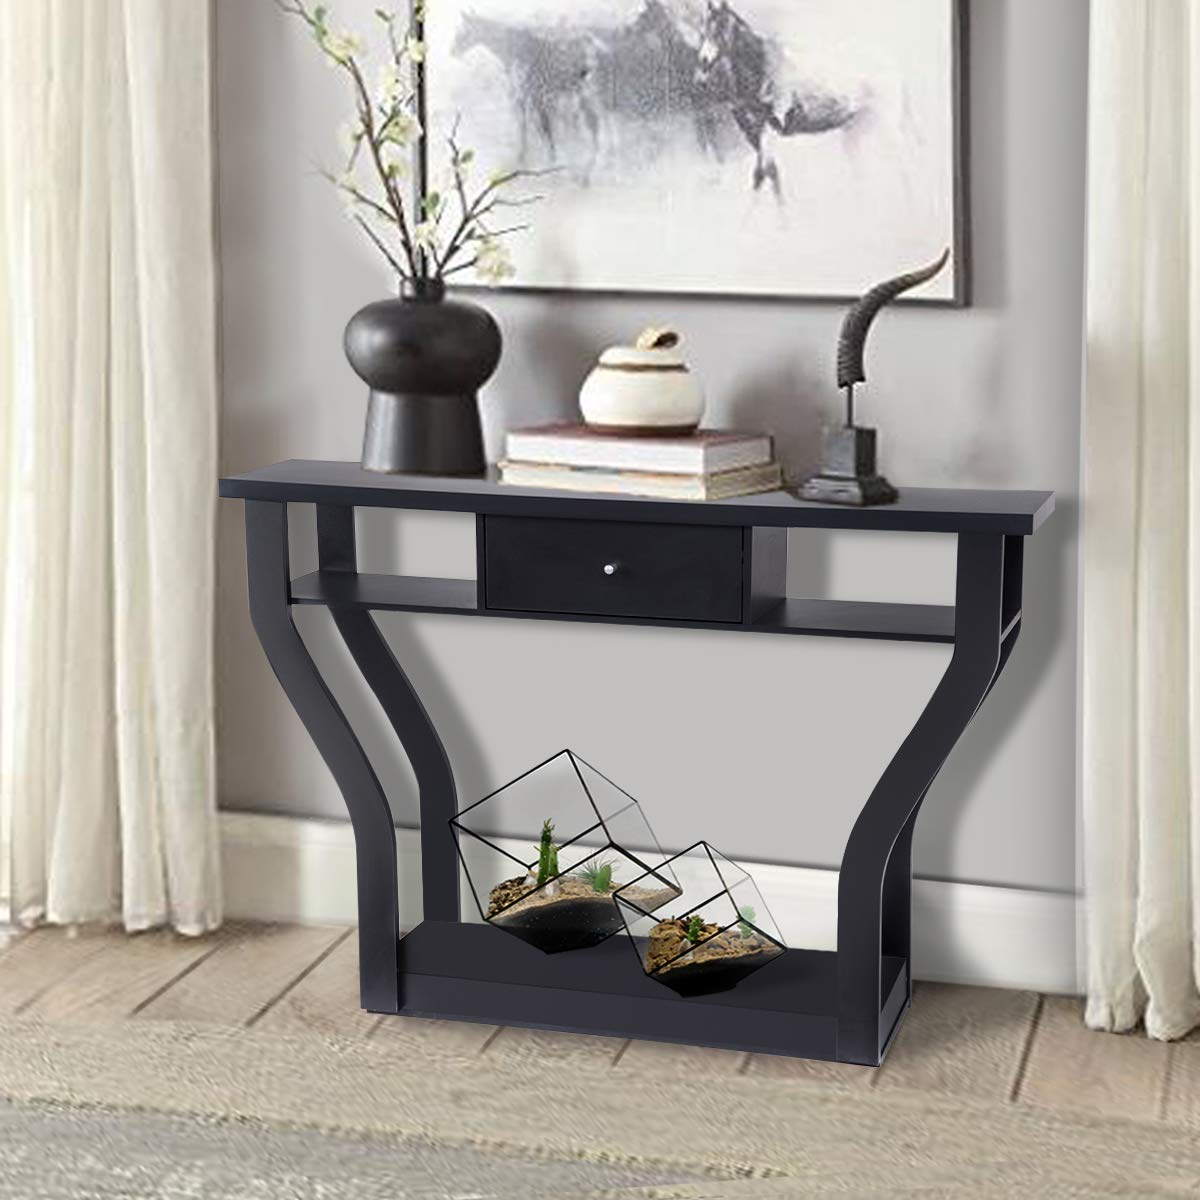 Giantex Console Hall Table for Entryway Small Space Sofa Side Table with Storage Drawer and Shelf Home Office Living Room Furniture Narrow Accent Hall Table (Black) by Giantex